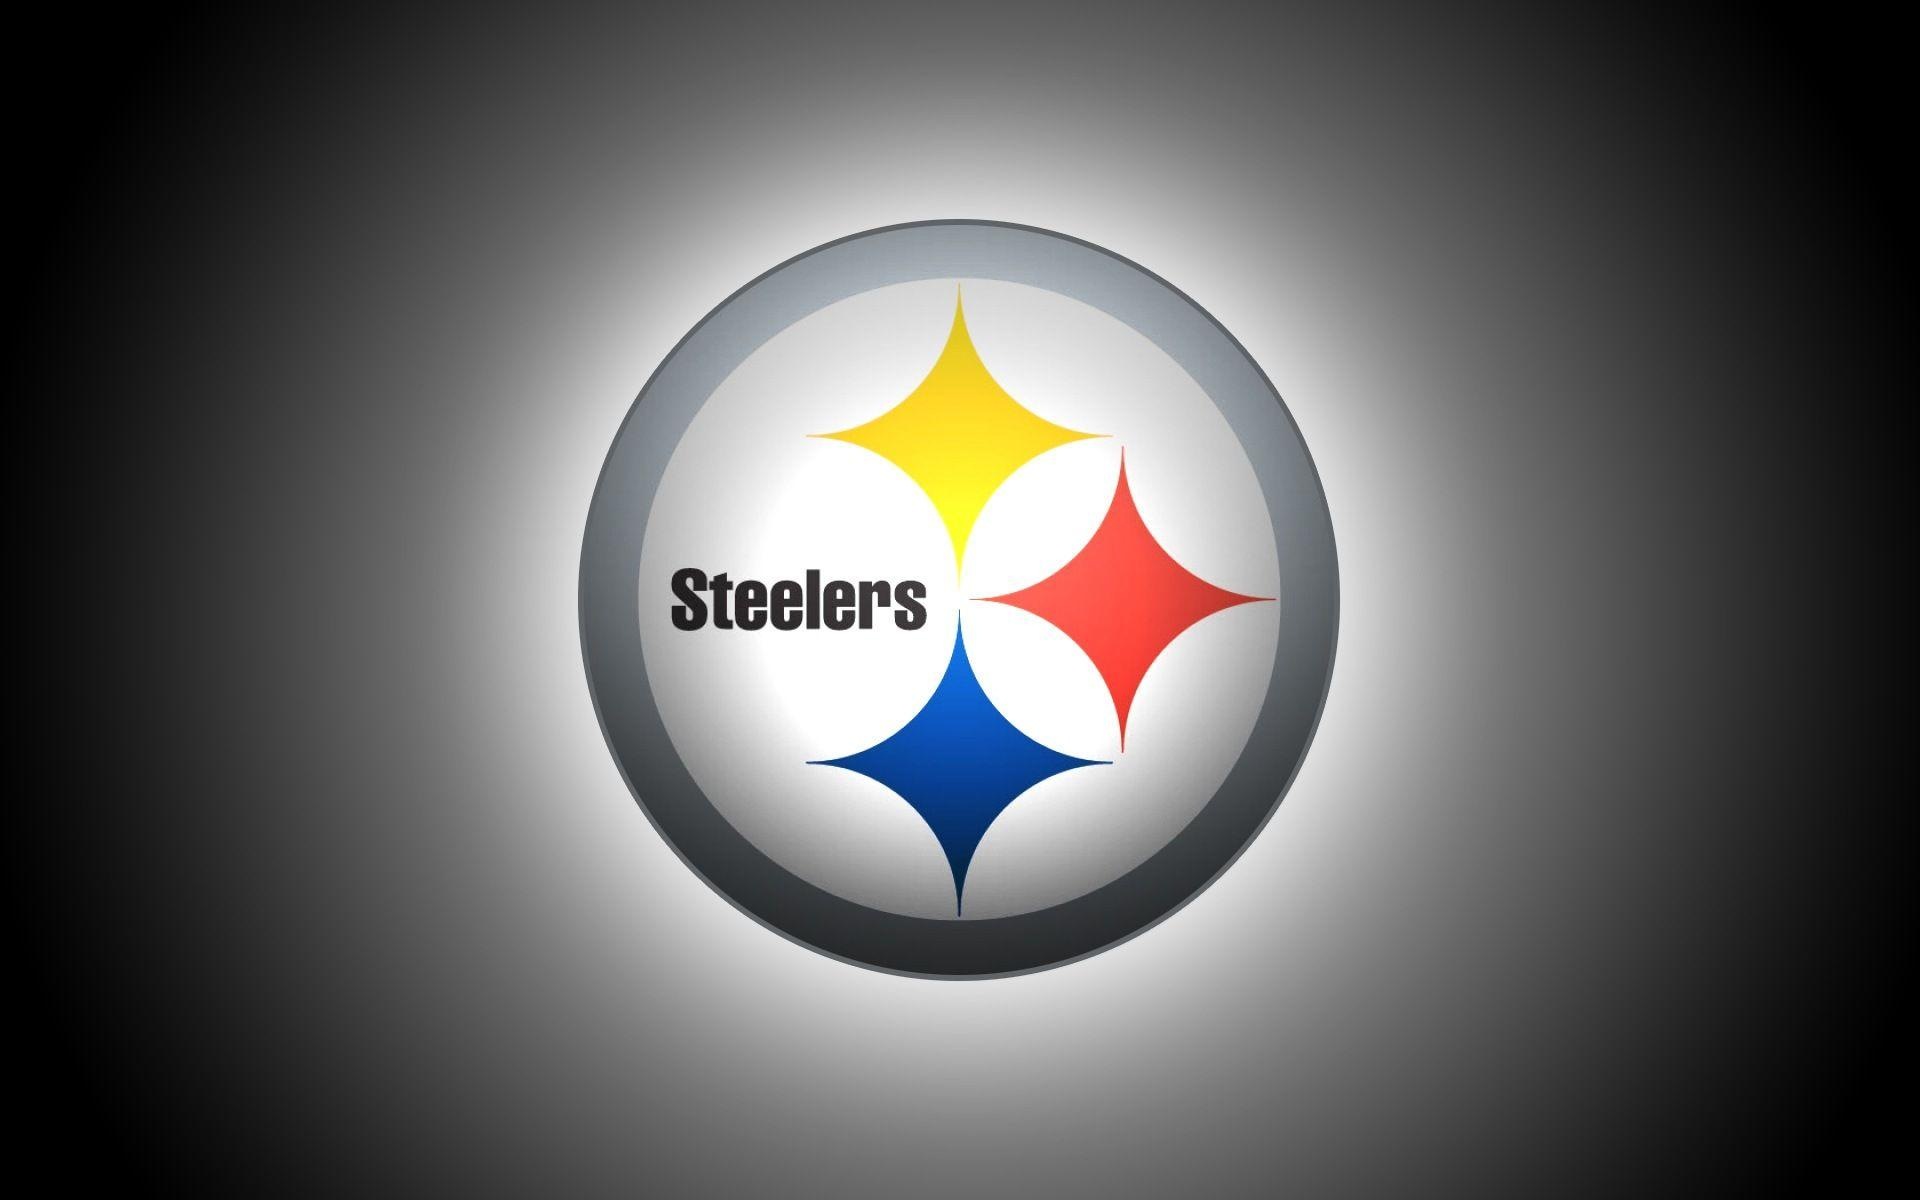 Pittsburgh Steelers Desktop Wallpapers - Wallpaper Cave